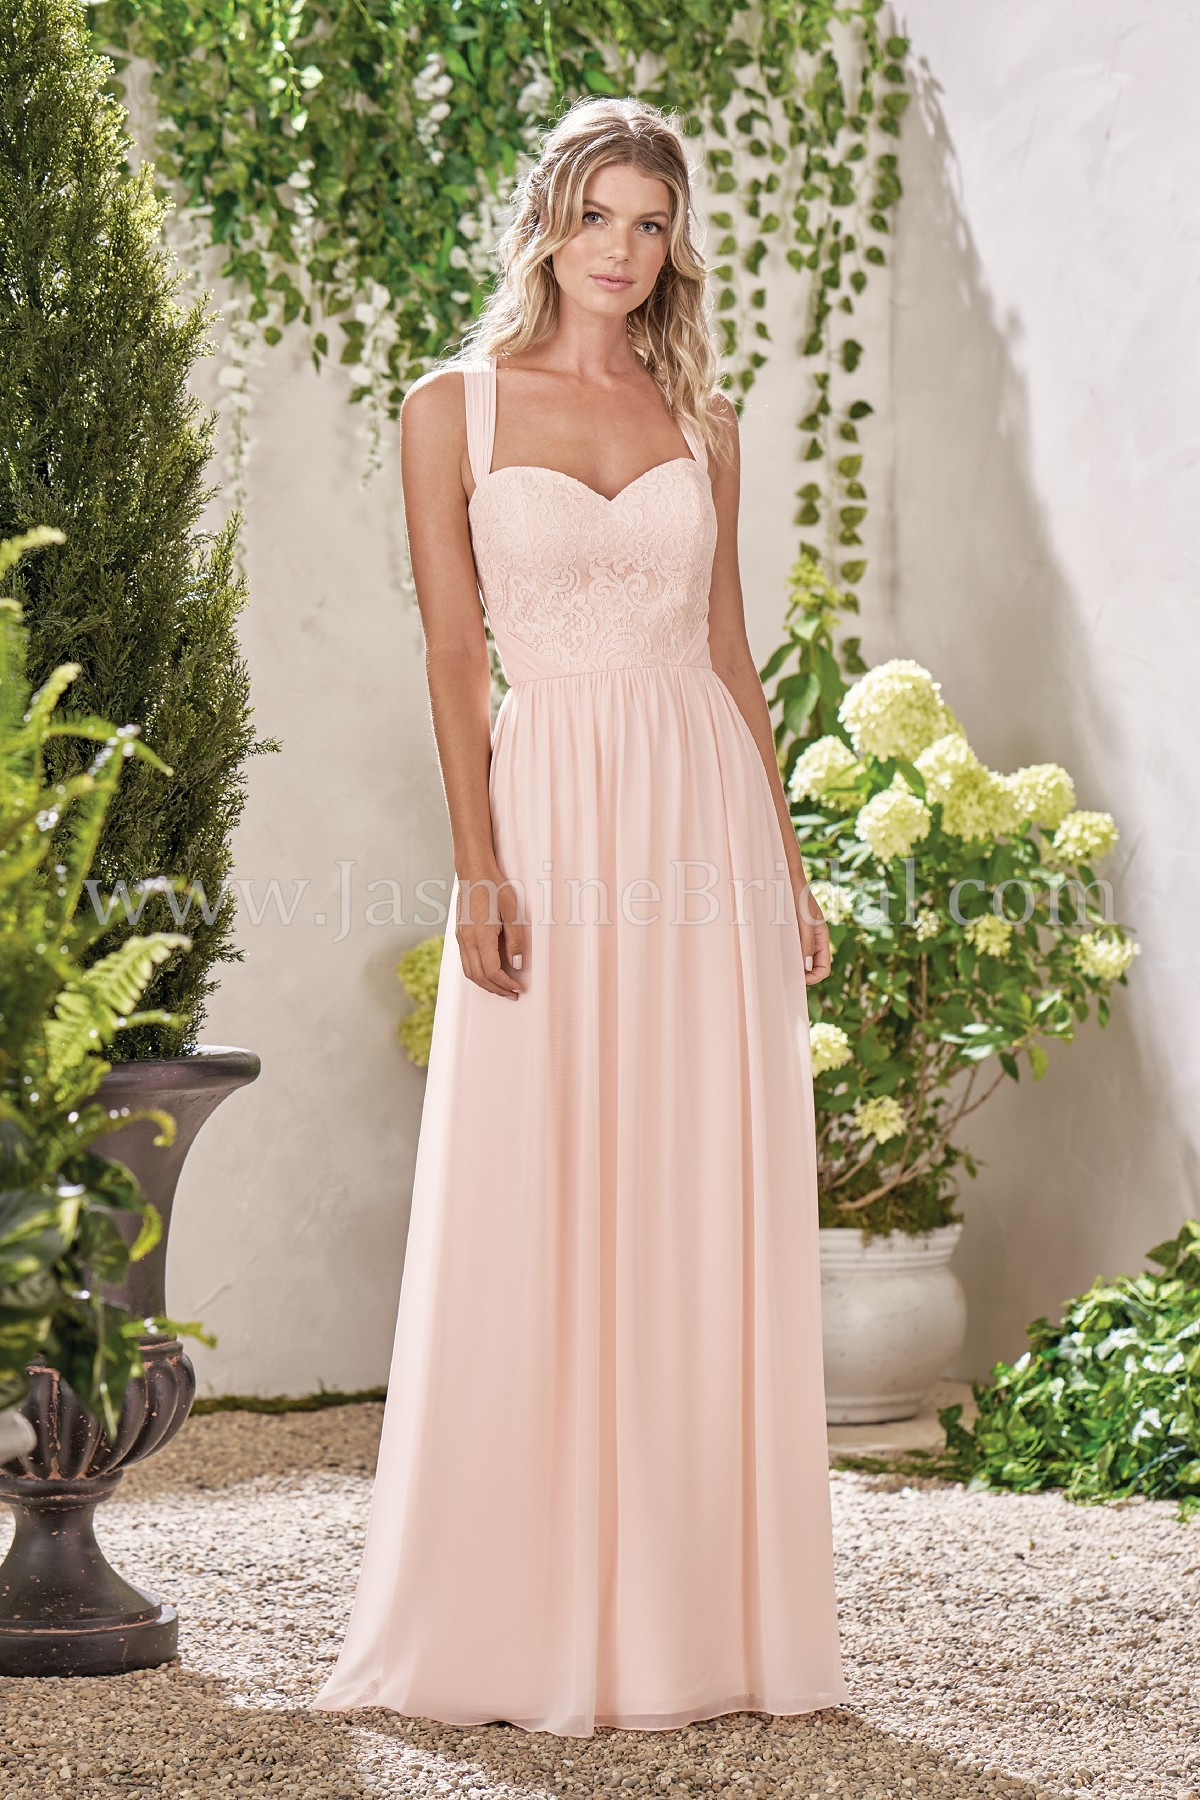 bridesmaid-dresses-Jasminebridal2